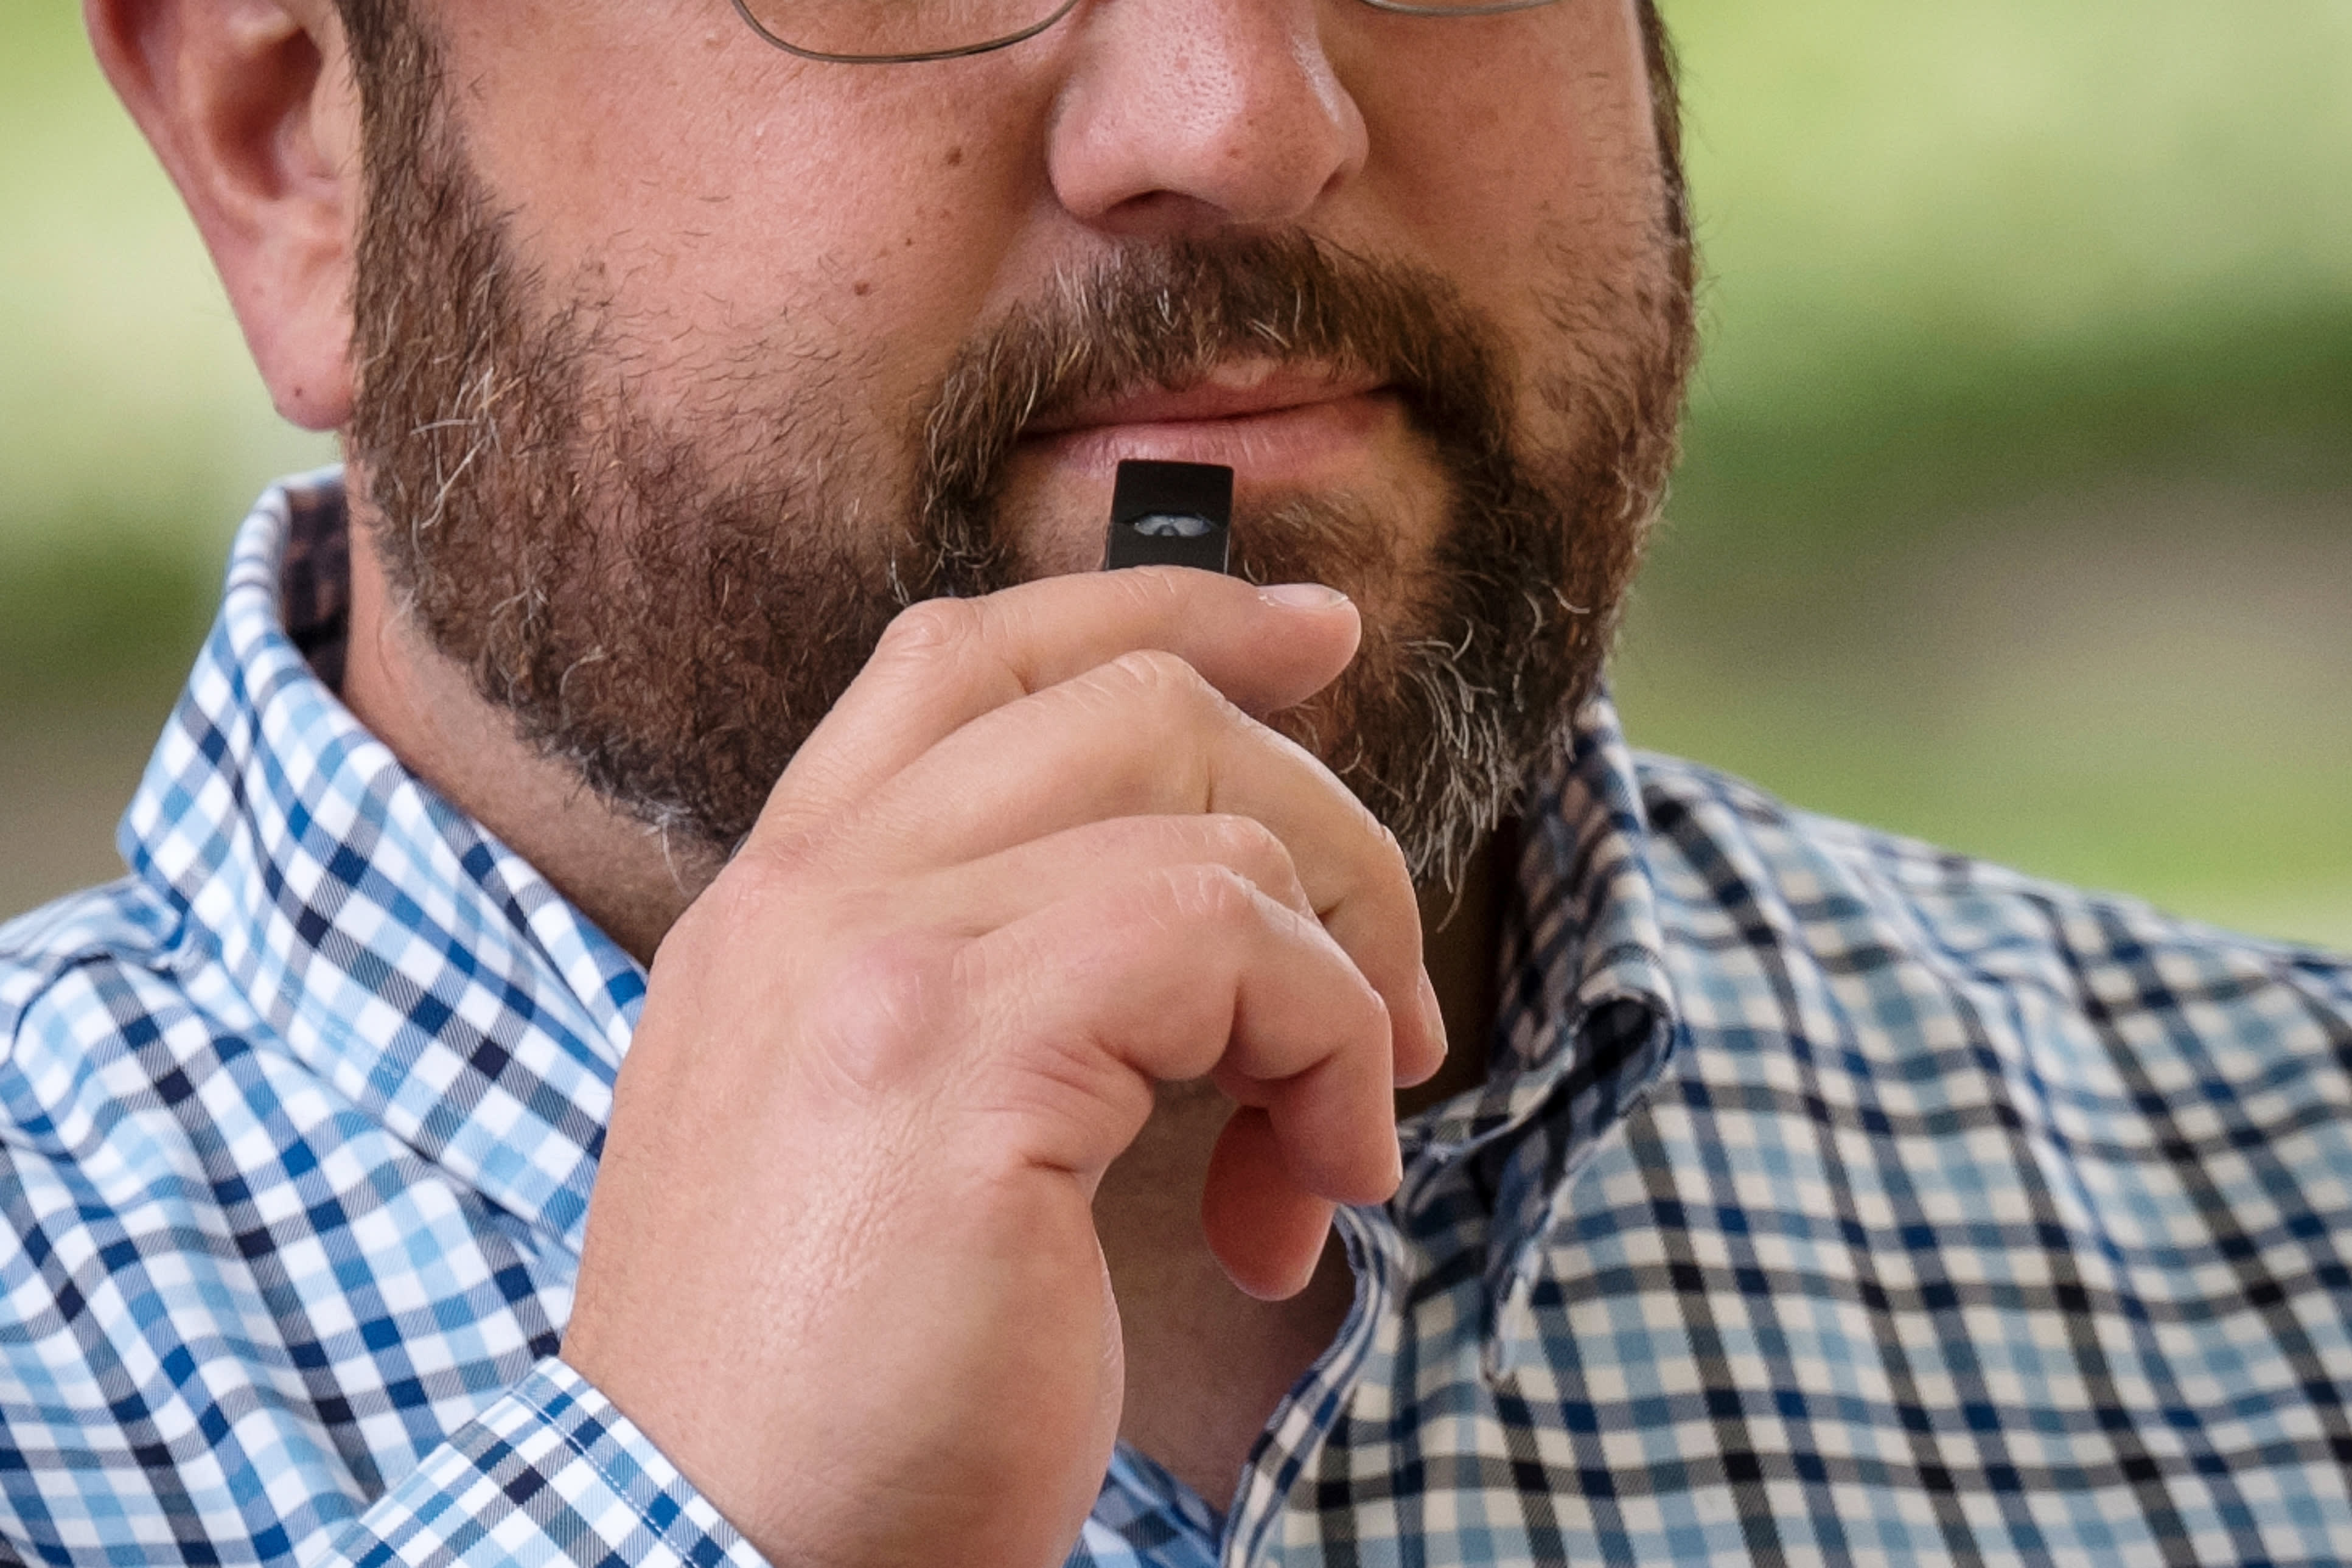 FDA approves Vuse vaping products for sale, marking a first for the e-cigarette industry